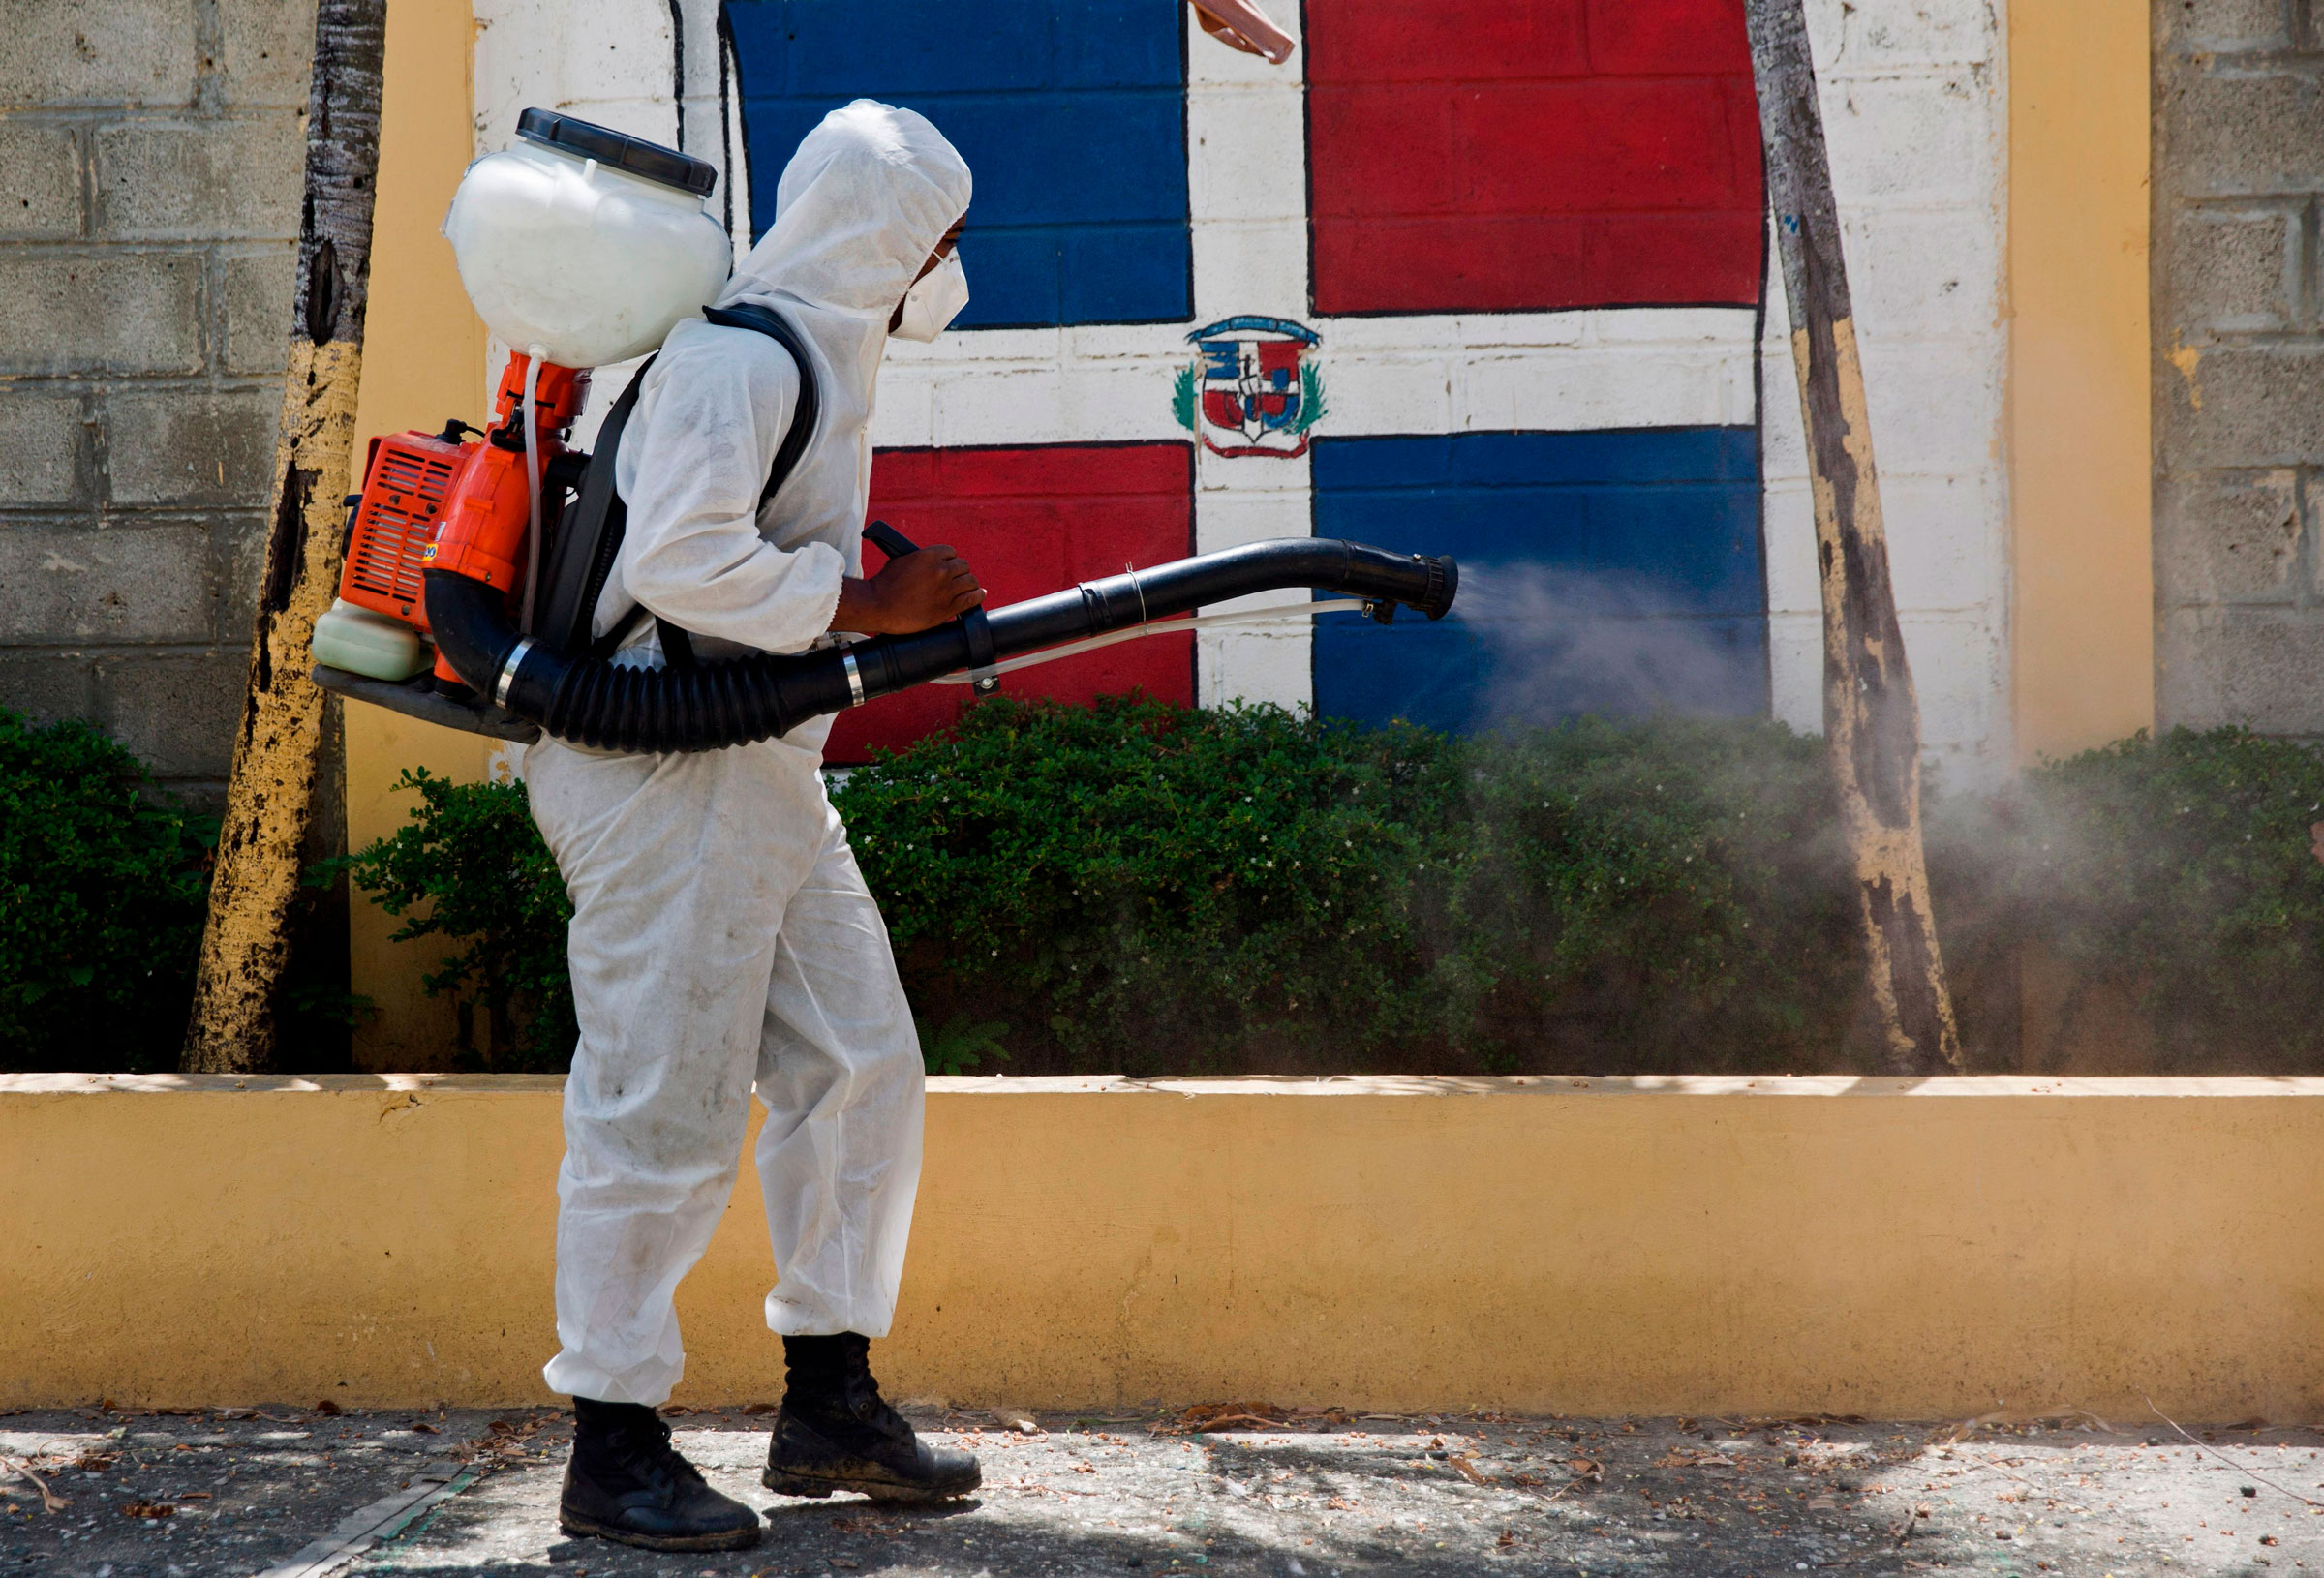 A worker fumigates an area of San Cristobal, Dominican Republic, in June.